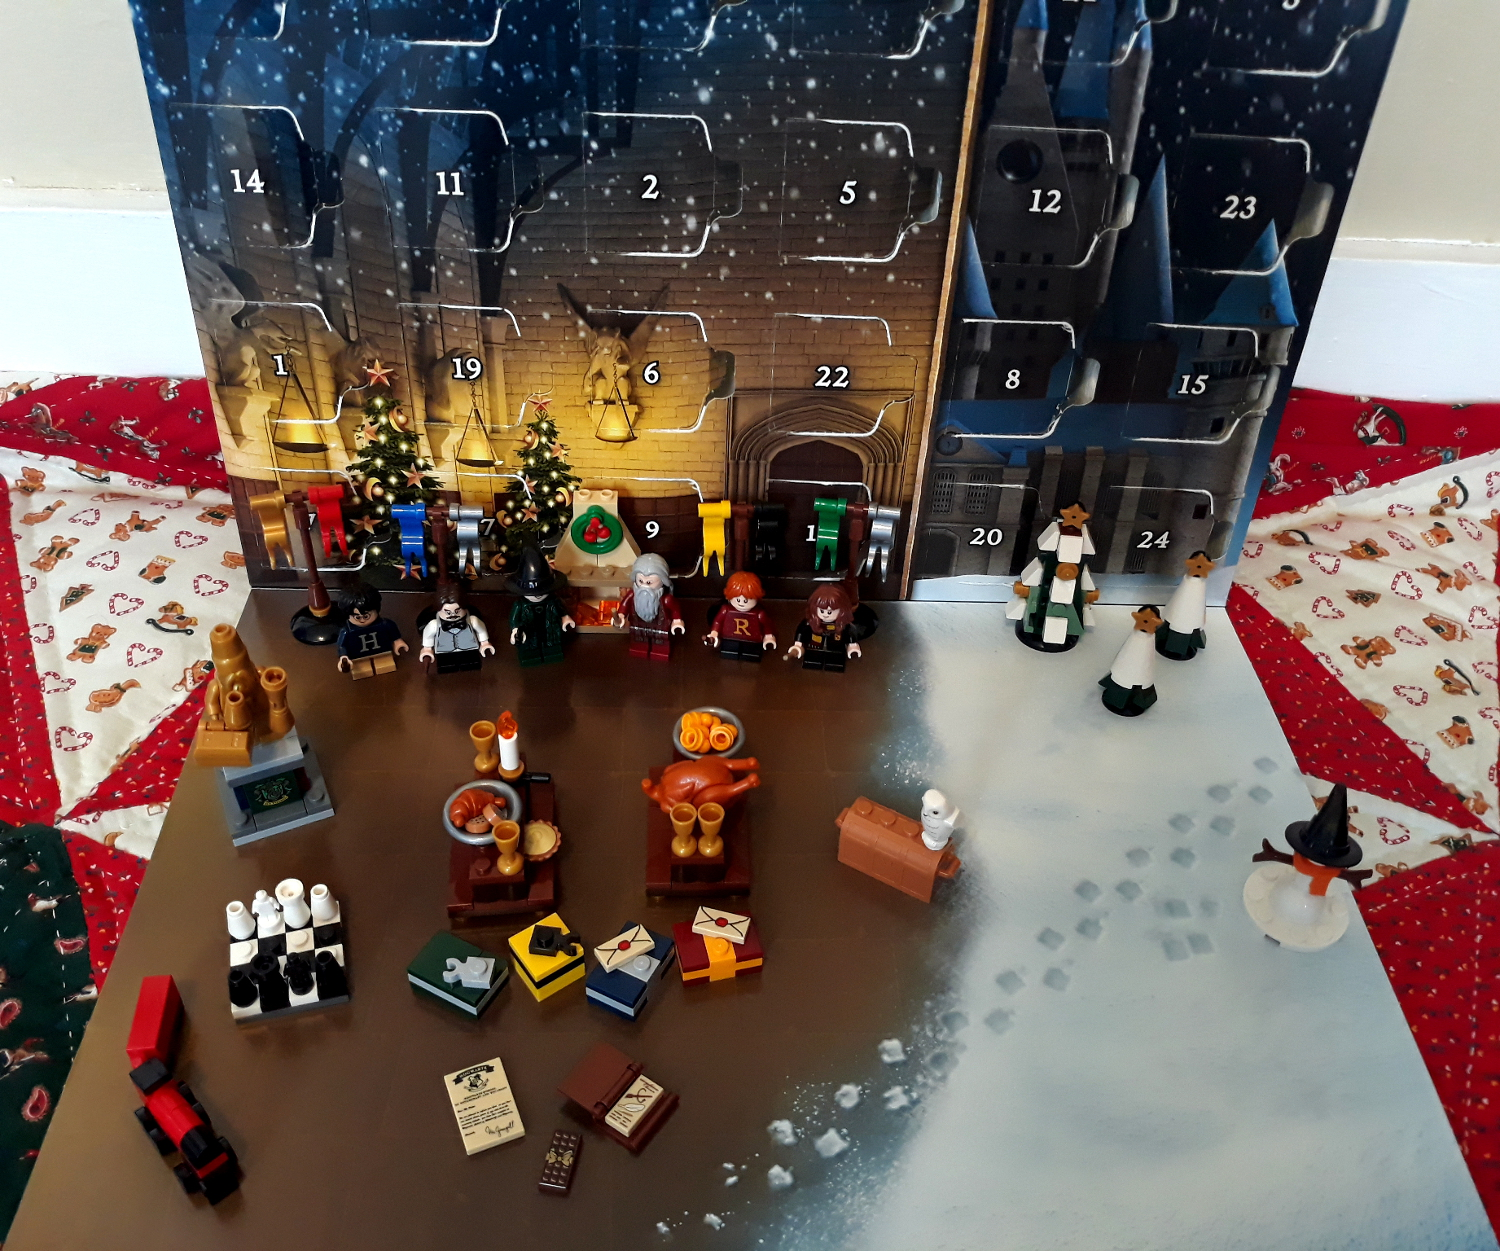 Final photo of the LEGO Harry Potter Advent Calander